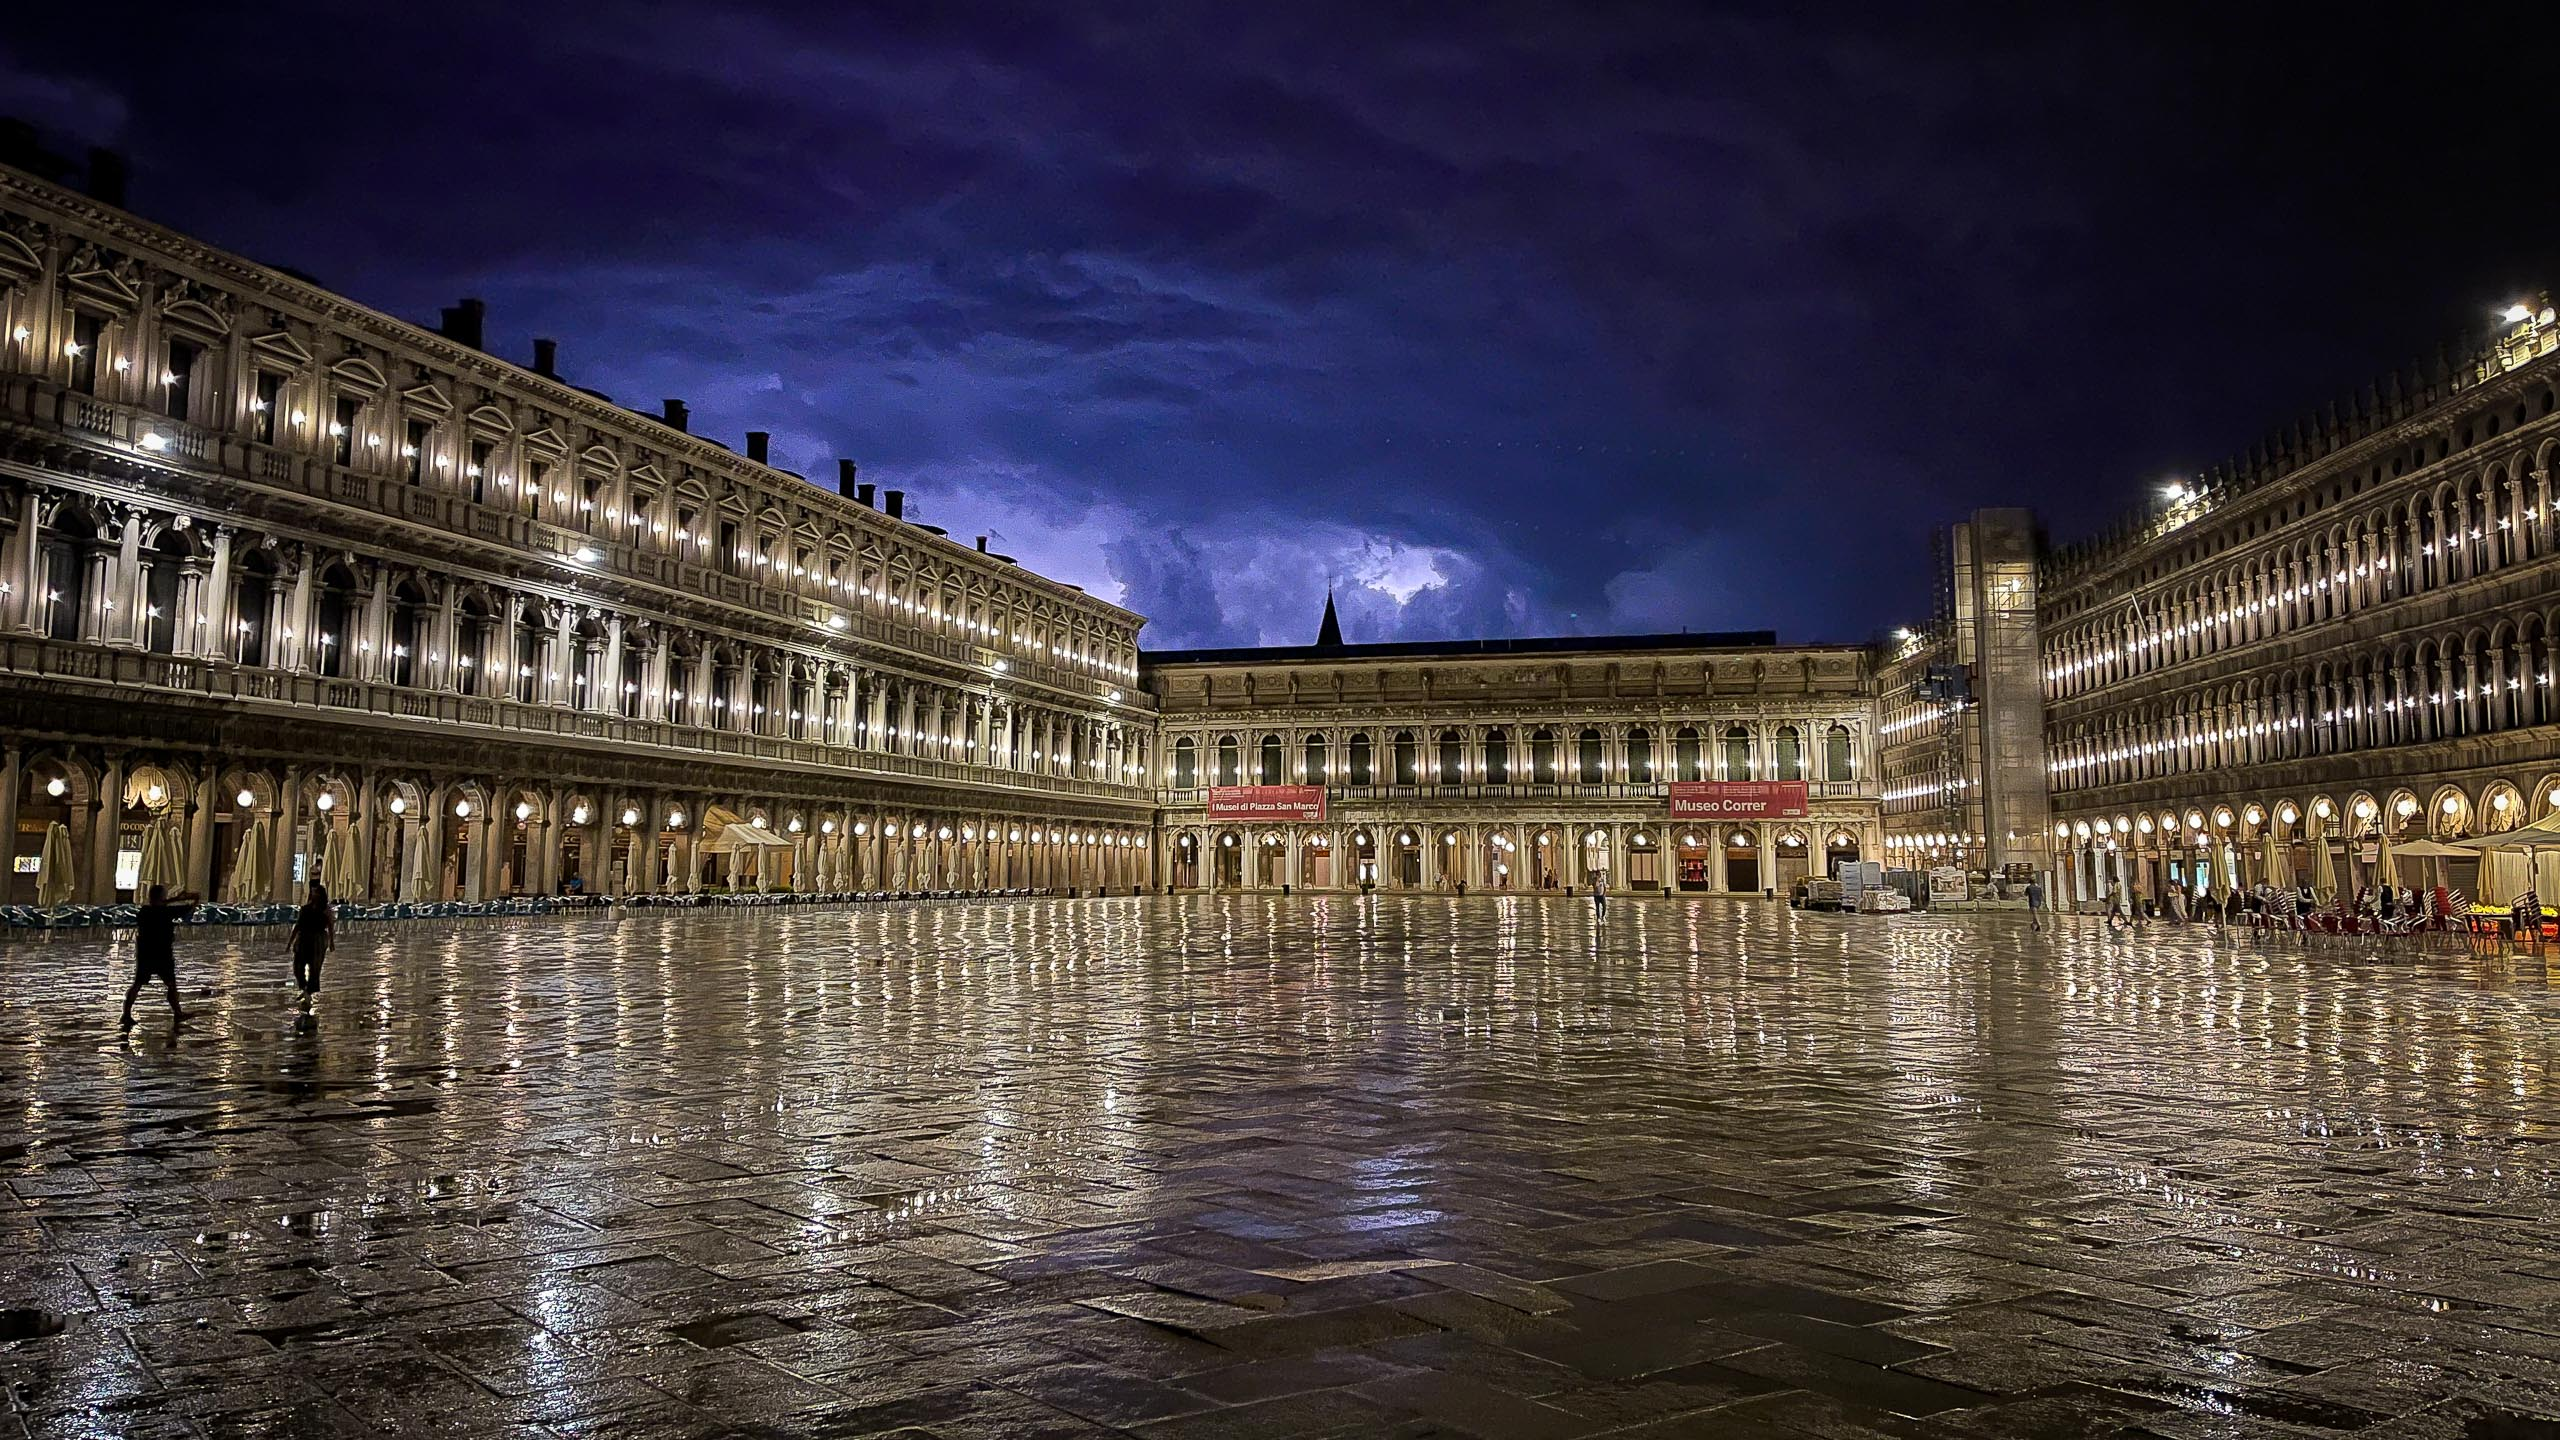 Lightning above Piazza San Marco in Venice